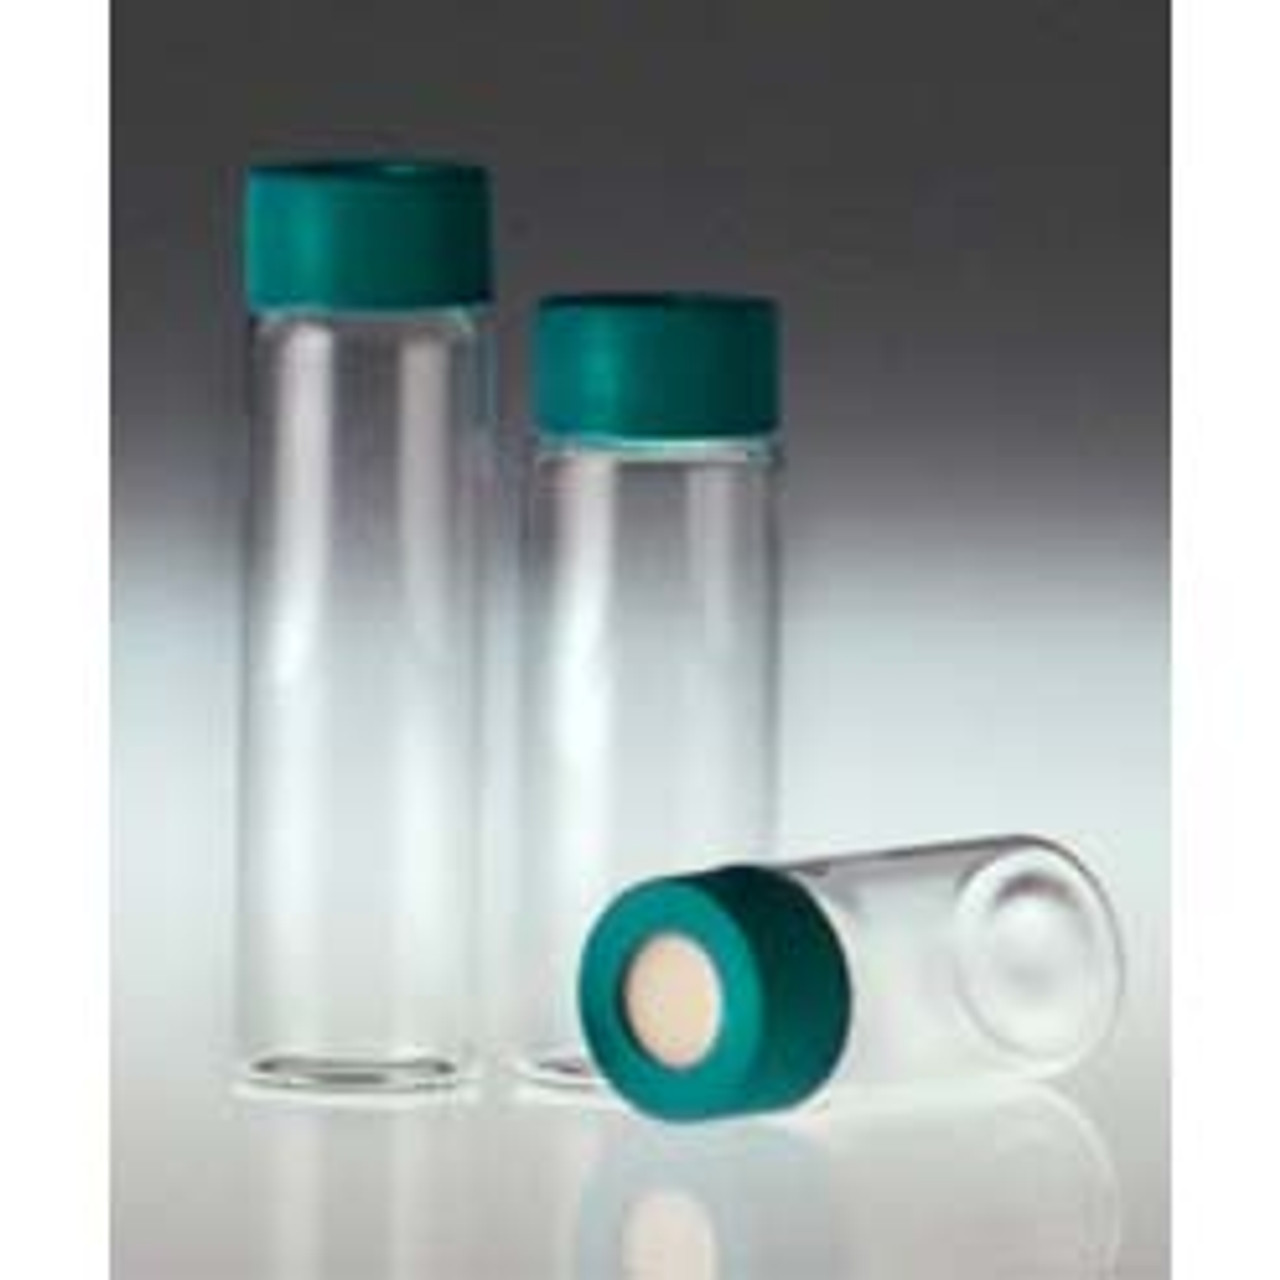 15 dram Clear Glass Vial with 24-410 Hole Cap15 dram Clear Glass Vial with 24-410 Hole Cap